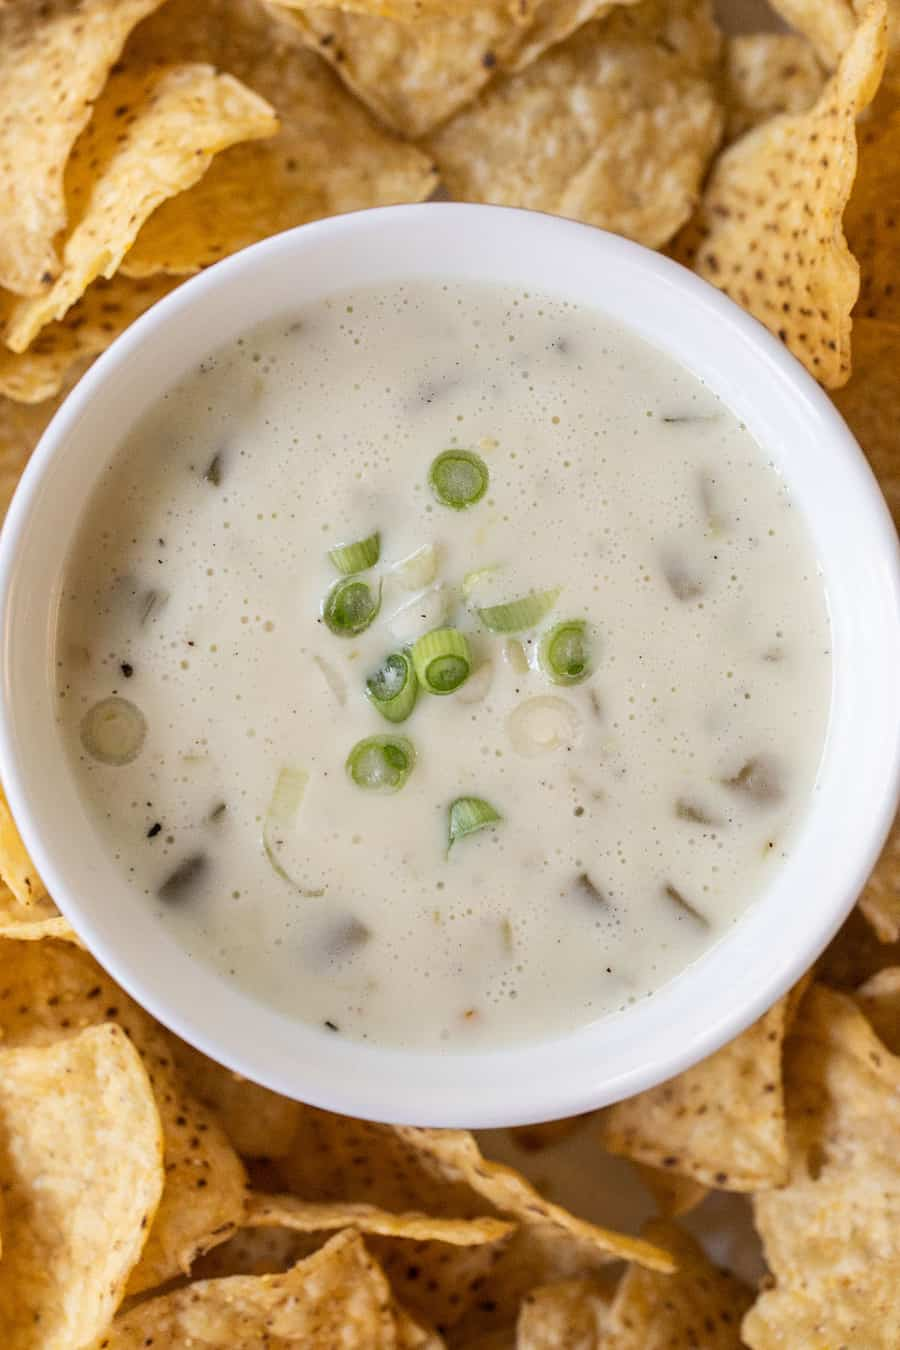 Queso blanco dip with chilis and green onions.